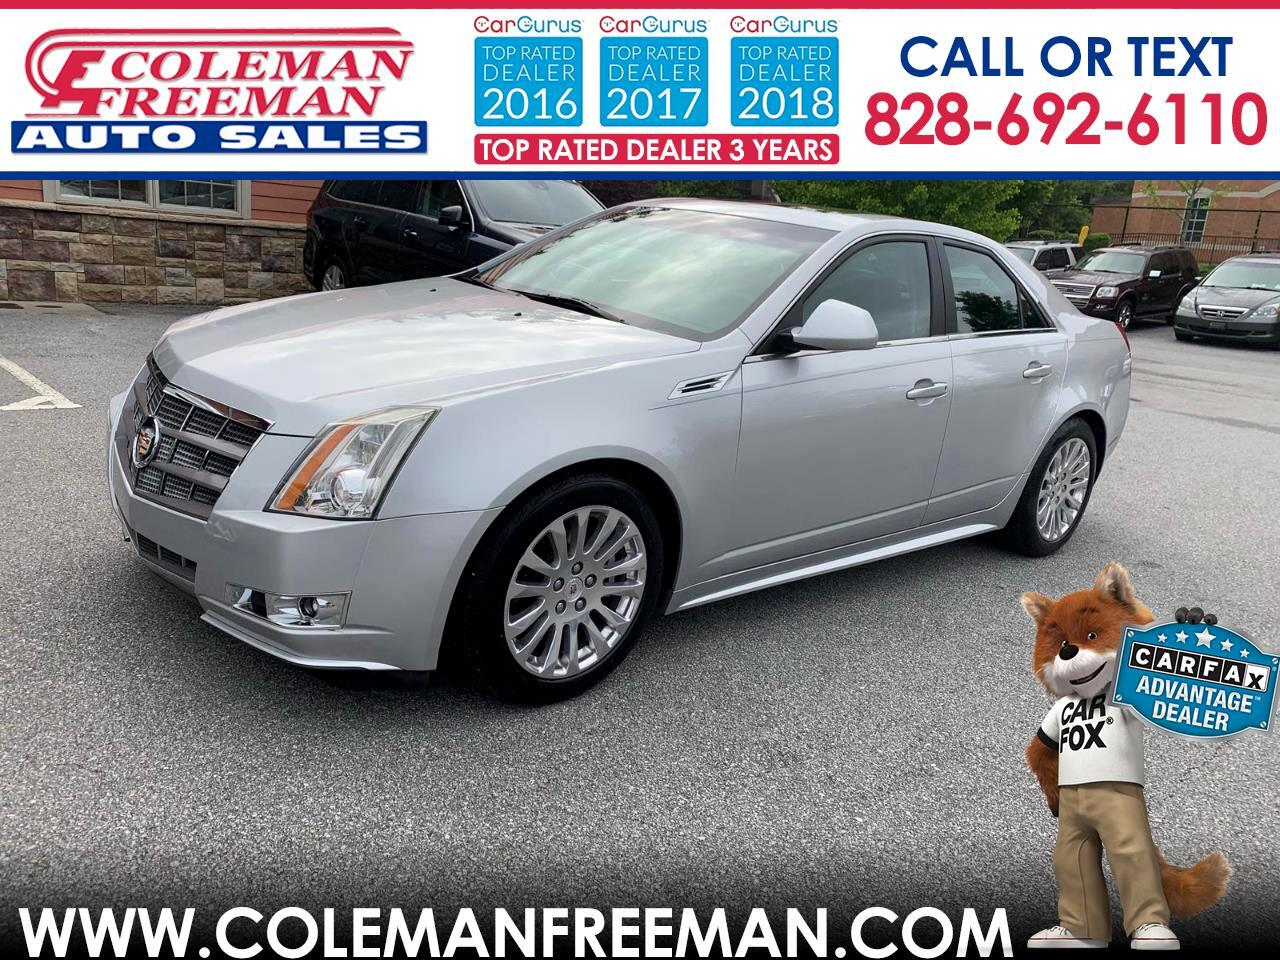 2010 Cadillac CTS Sedan 4dr Sdn 3.6L Performance RWD